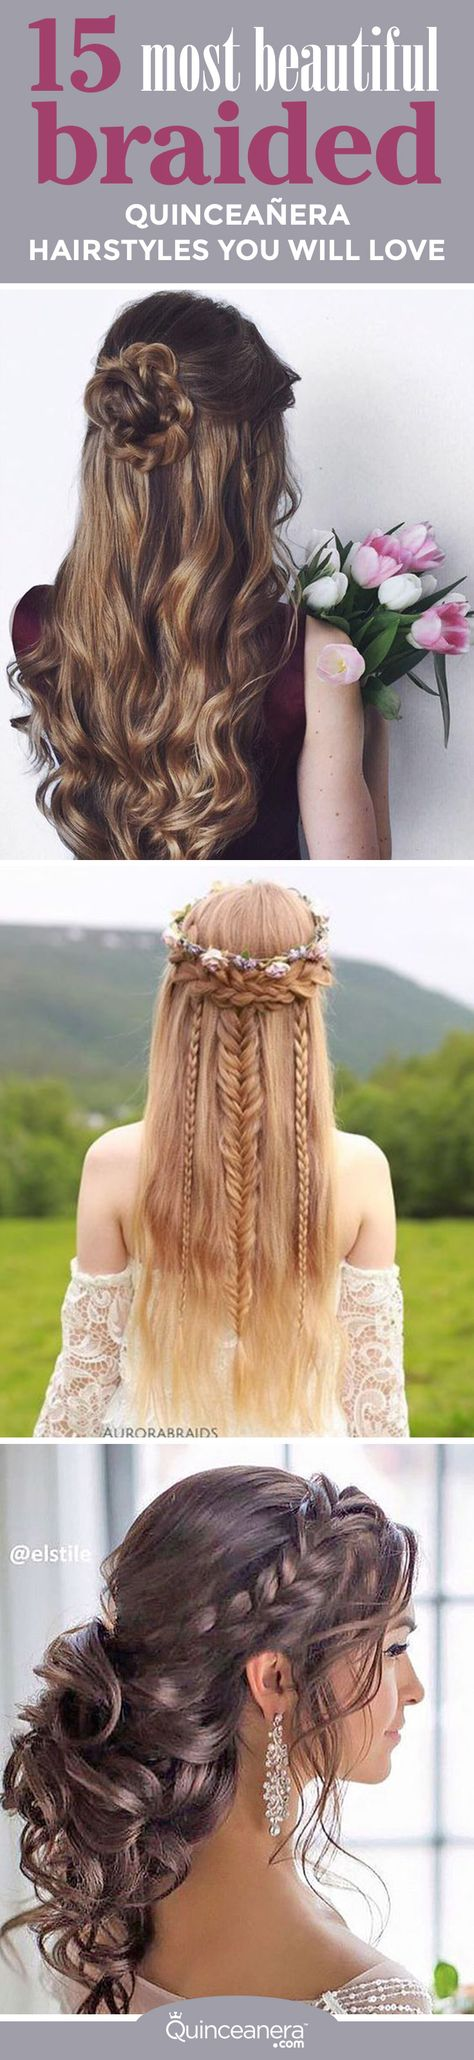 List of quinceaneras hairstyles for damas sweet 15 images